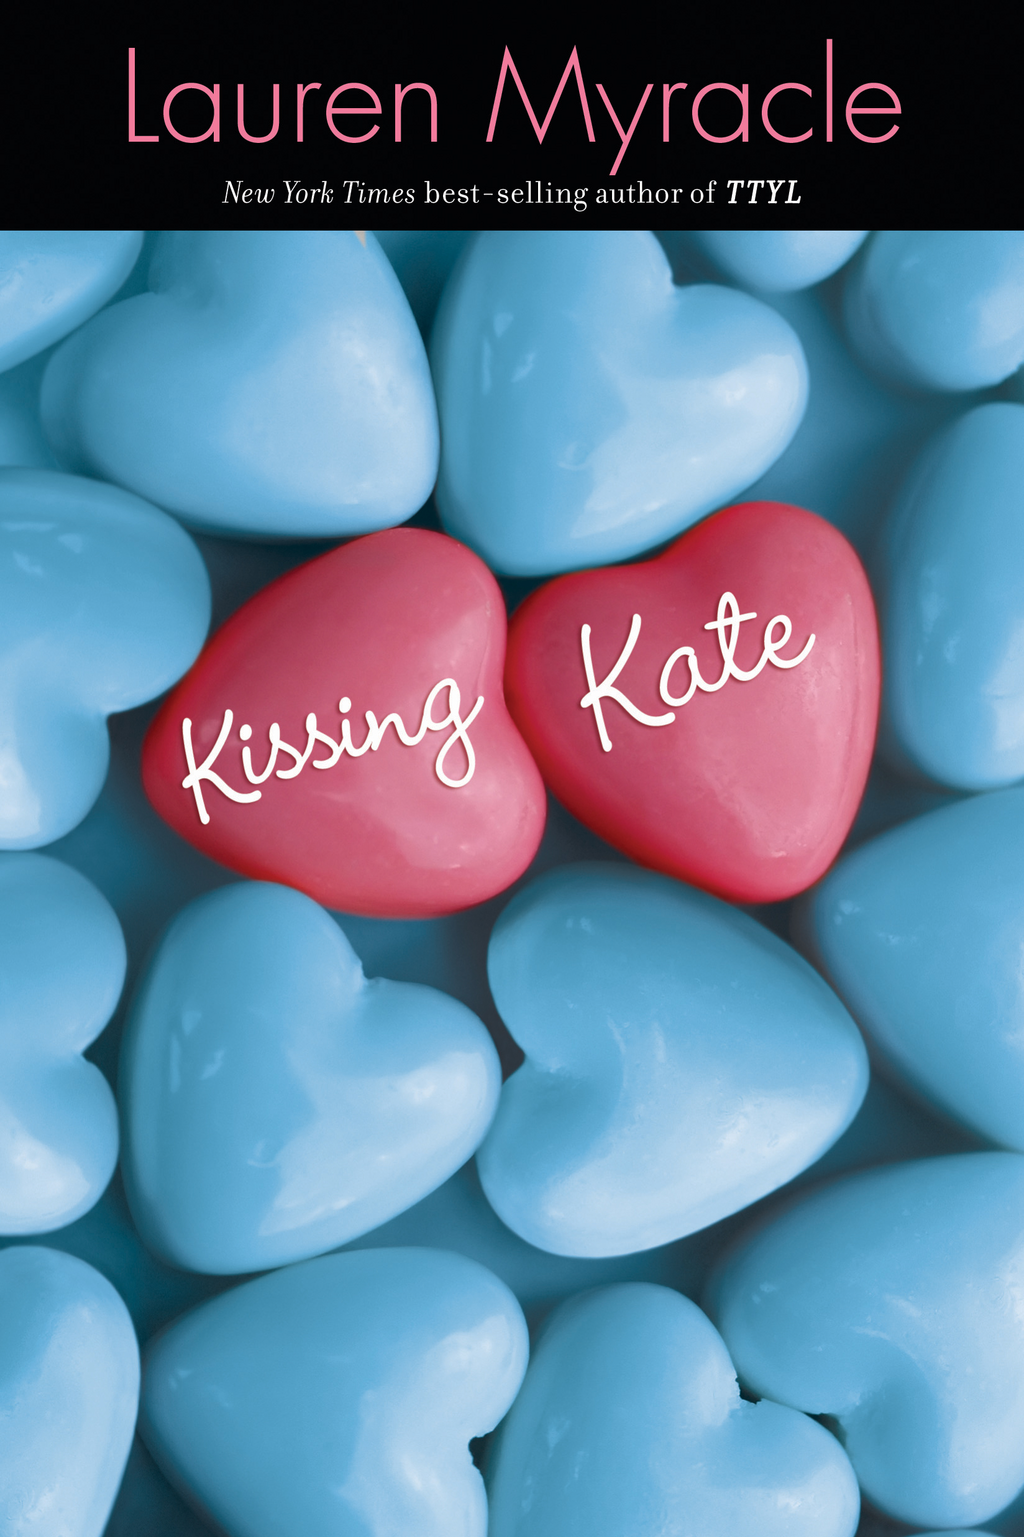 Kissing Kate By: Lauren Myracle